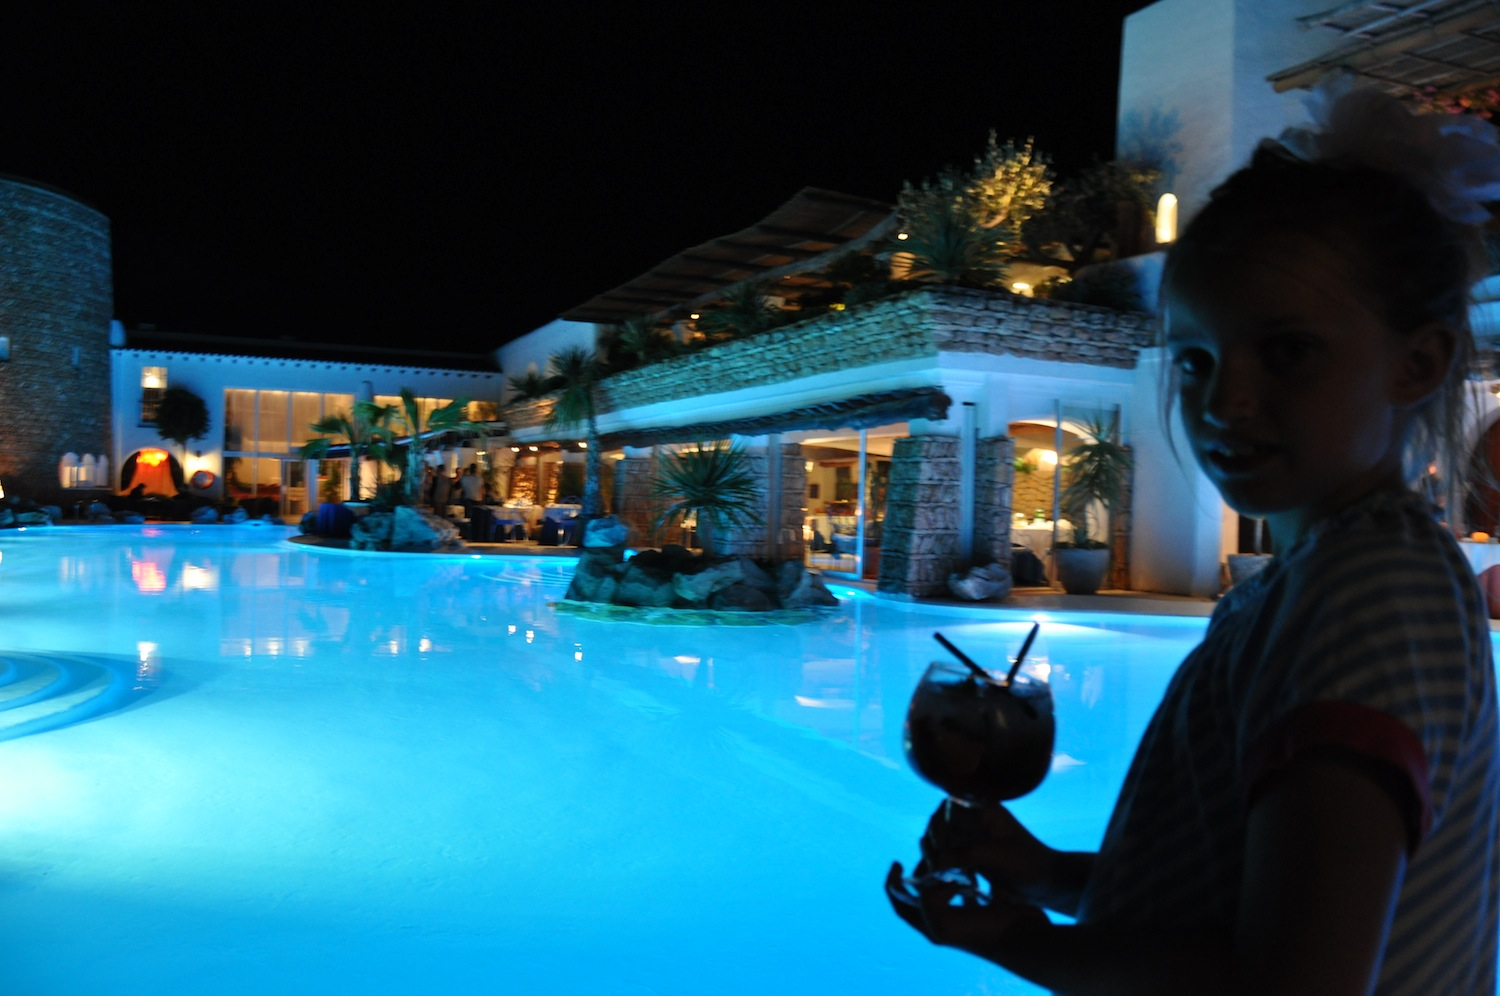 Hacienda_Ibiza+pool_at_night